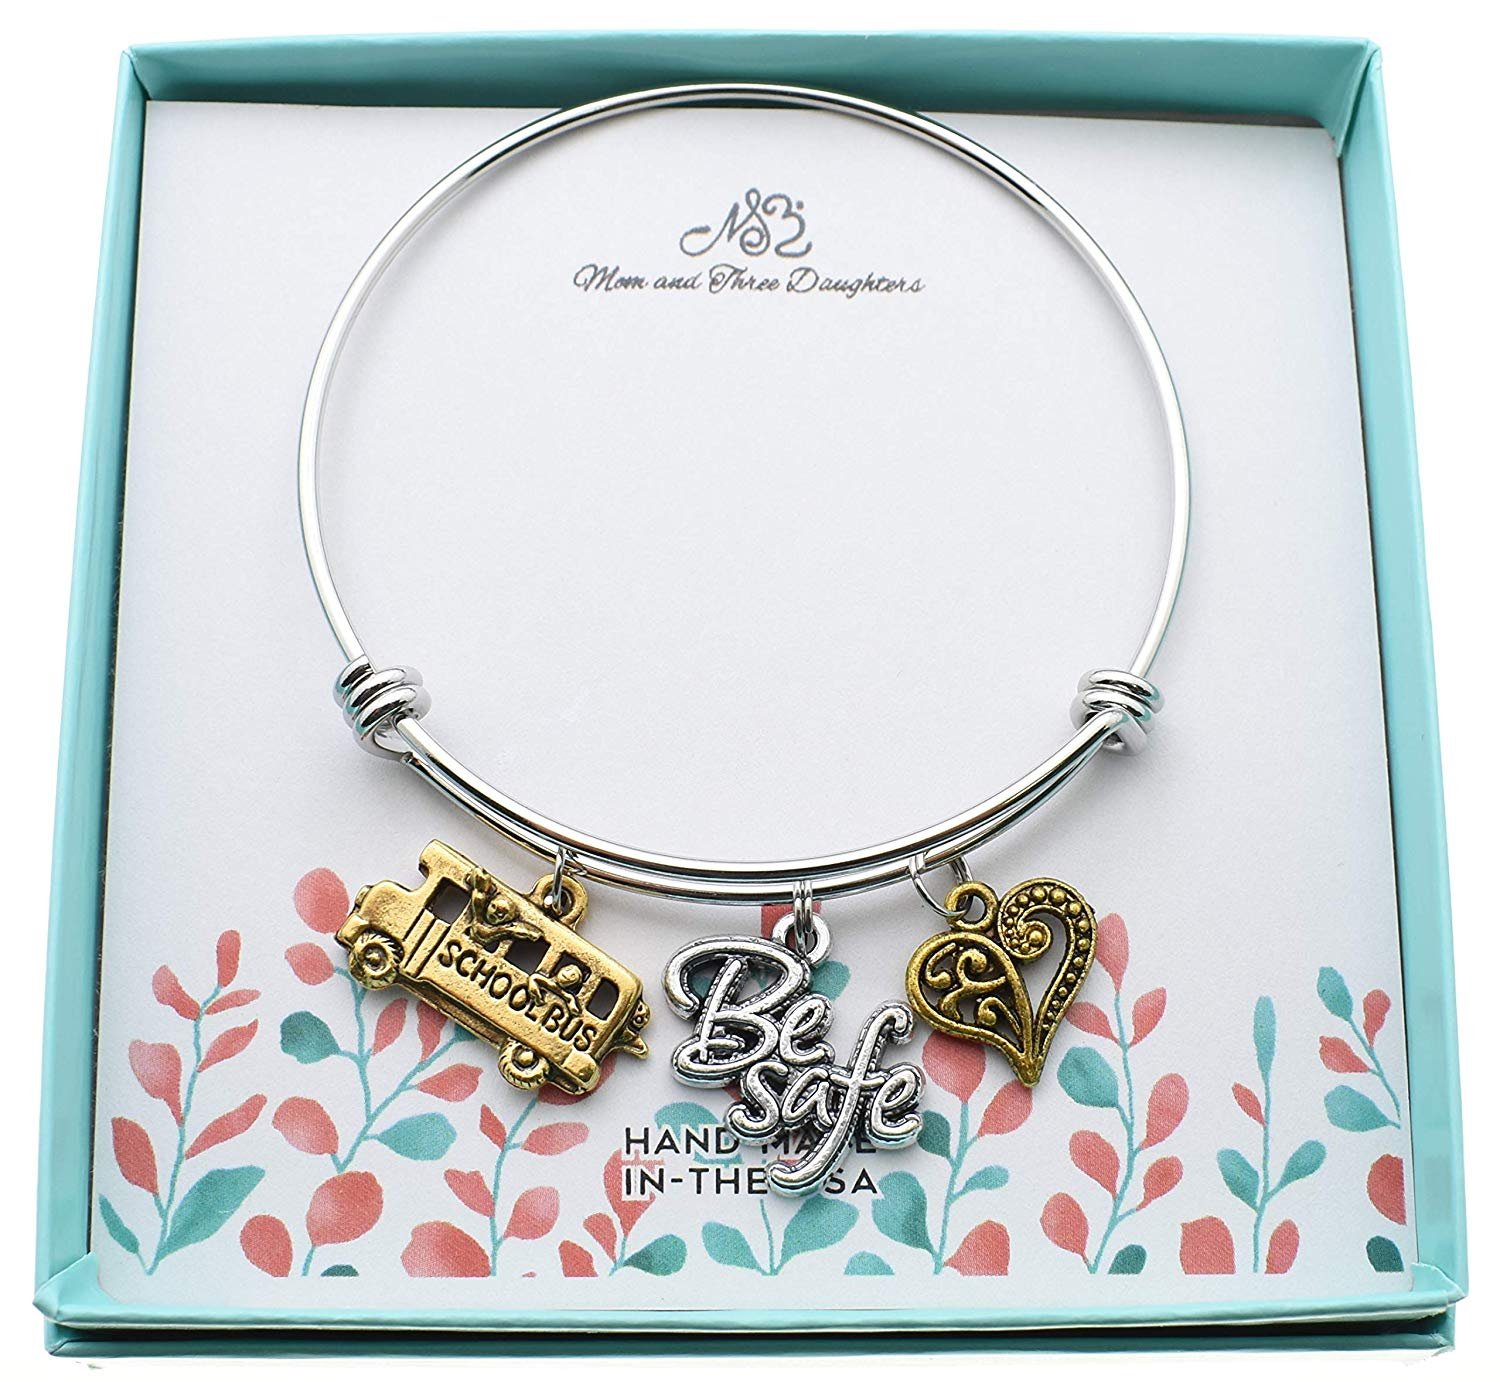 Cool driver gift ideas - A cute bangle with school bus themed charms